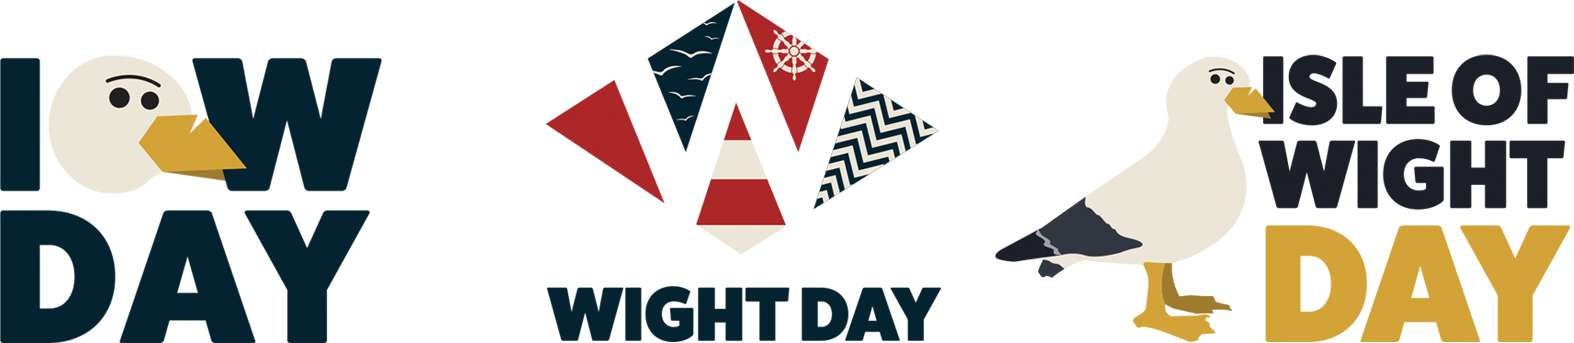 Isle of Wight day initial concepts